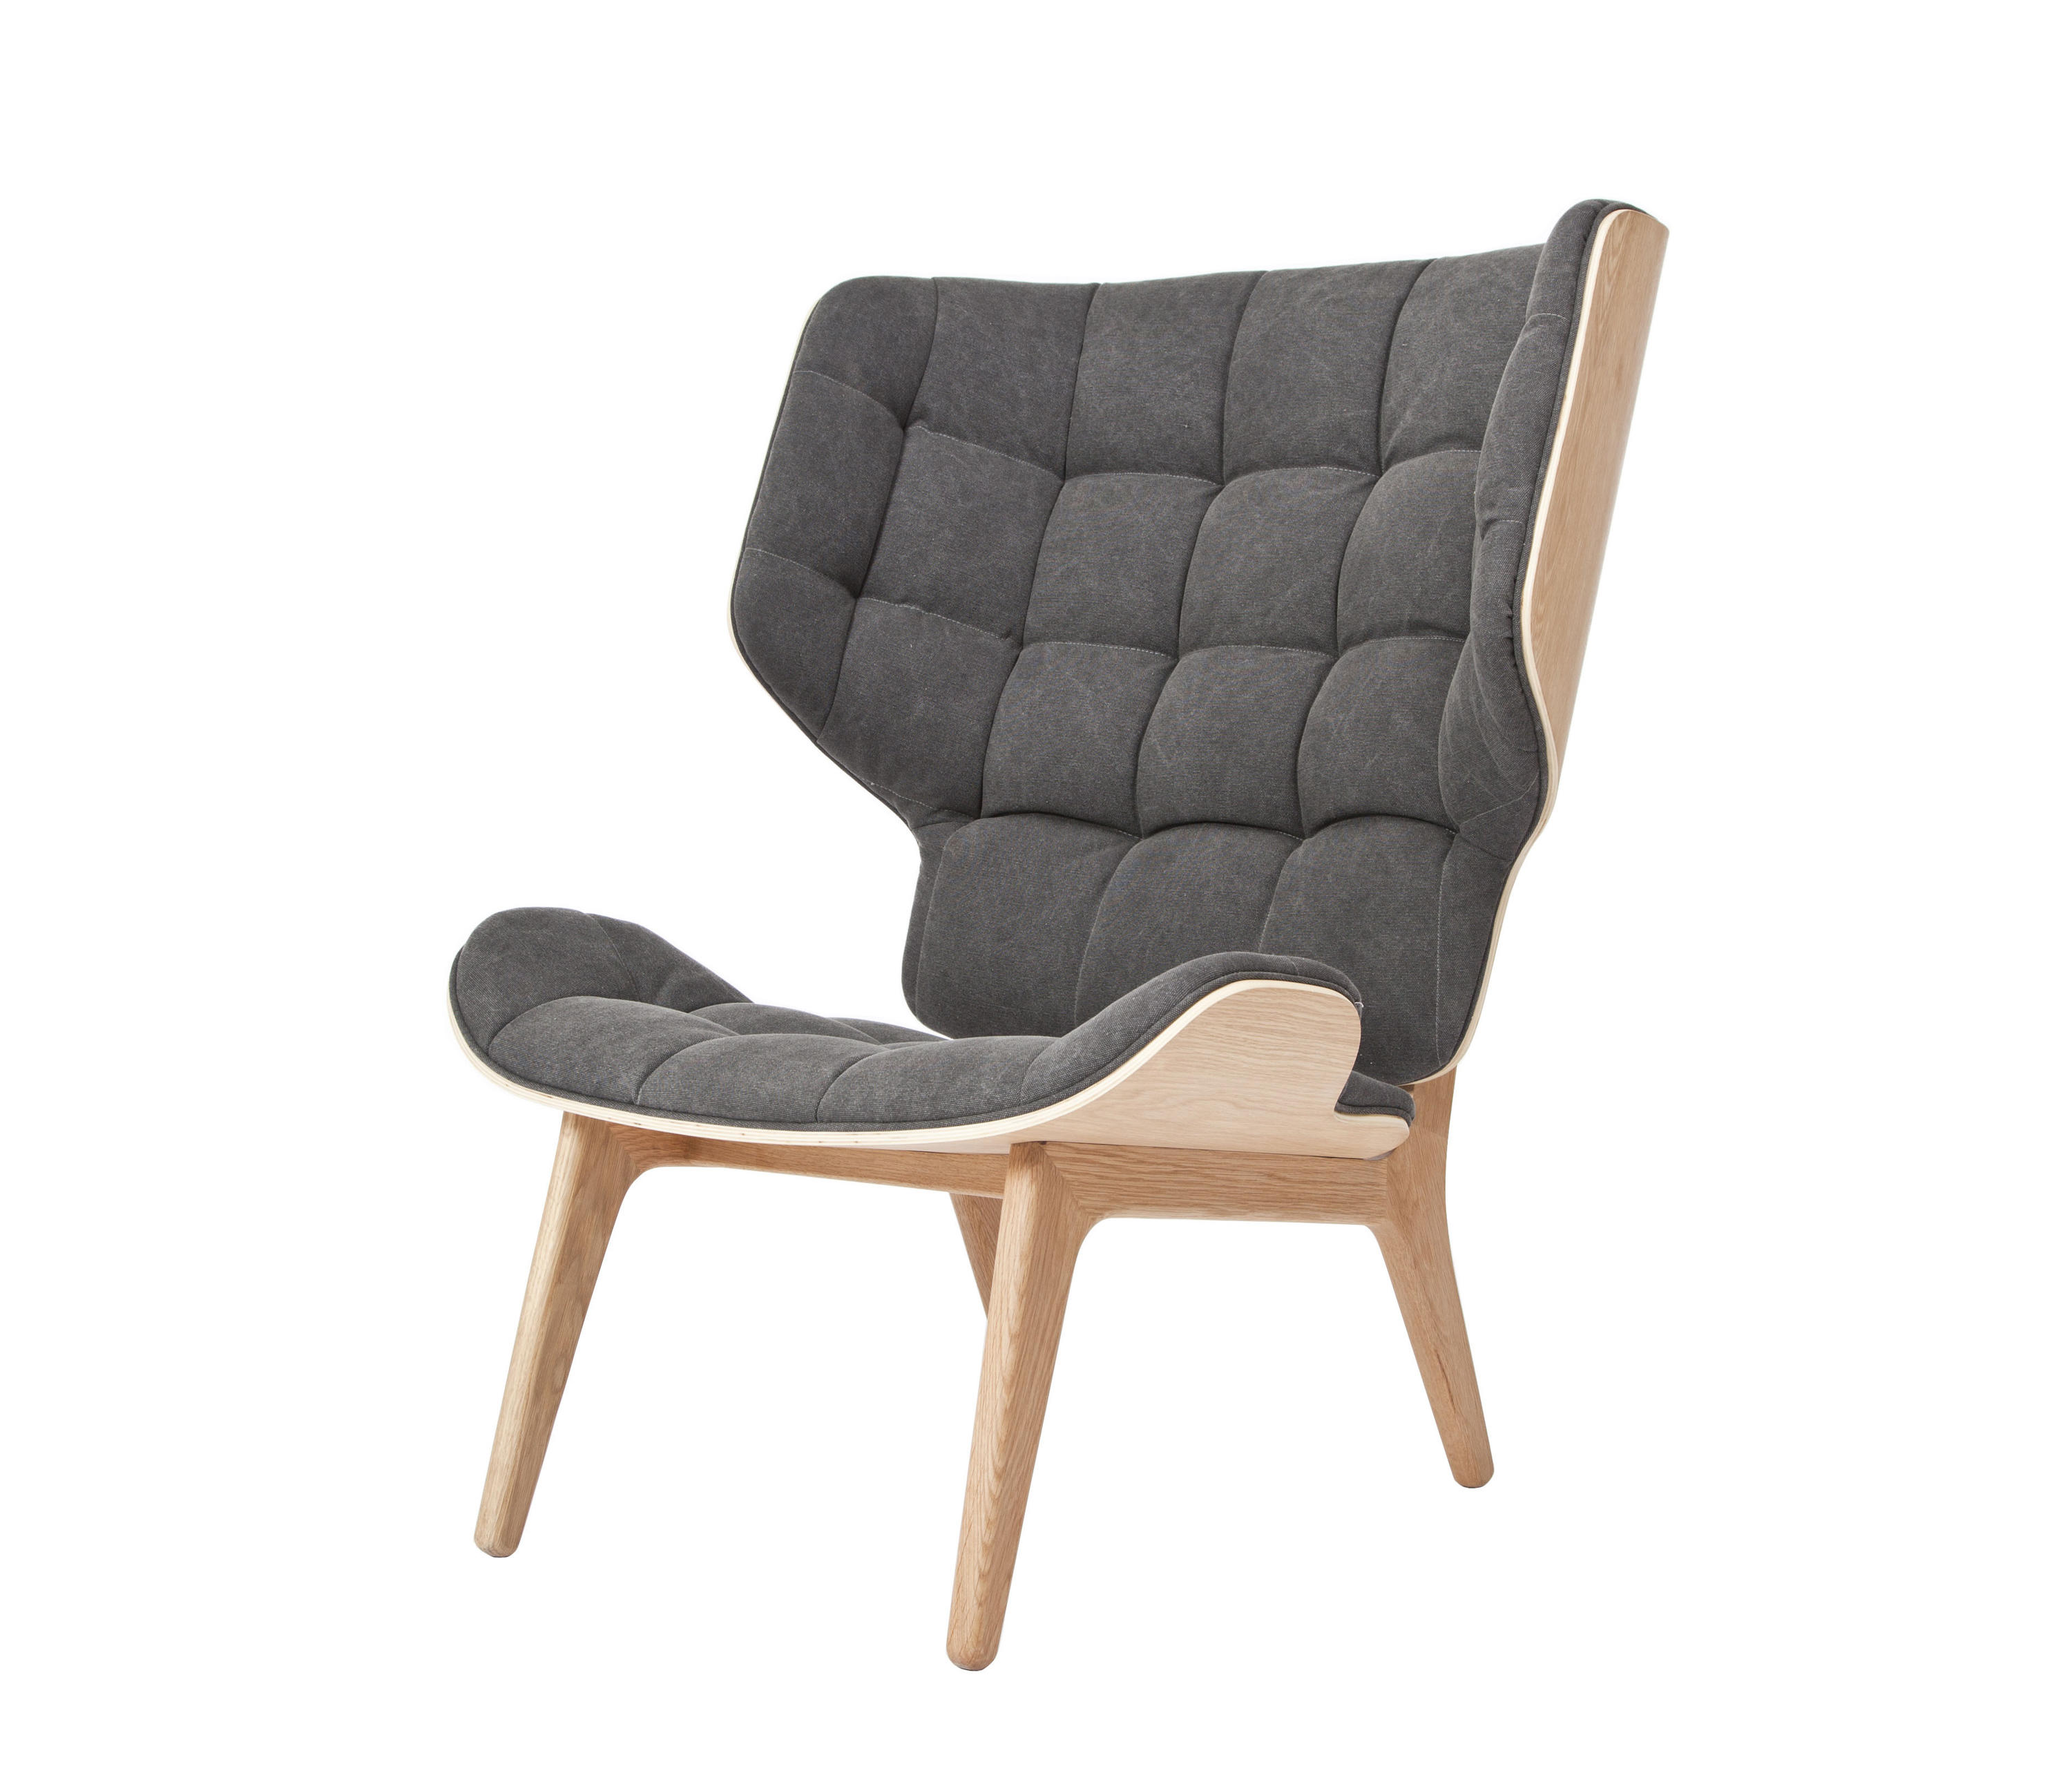 Mammoth chair lounge chairs from norr11 architonic for Sessel 80 breit